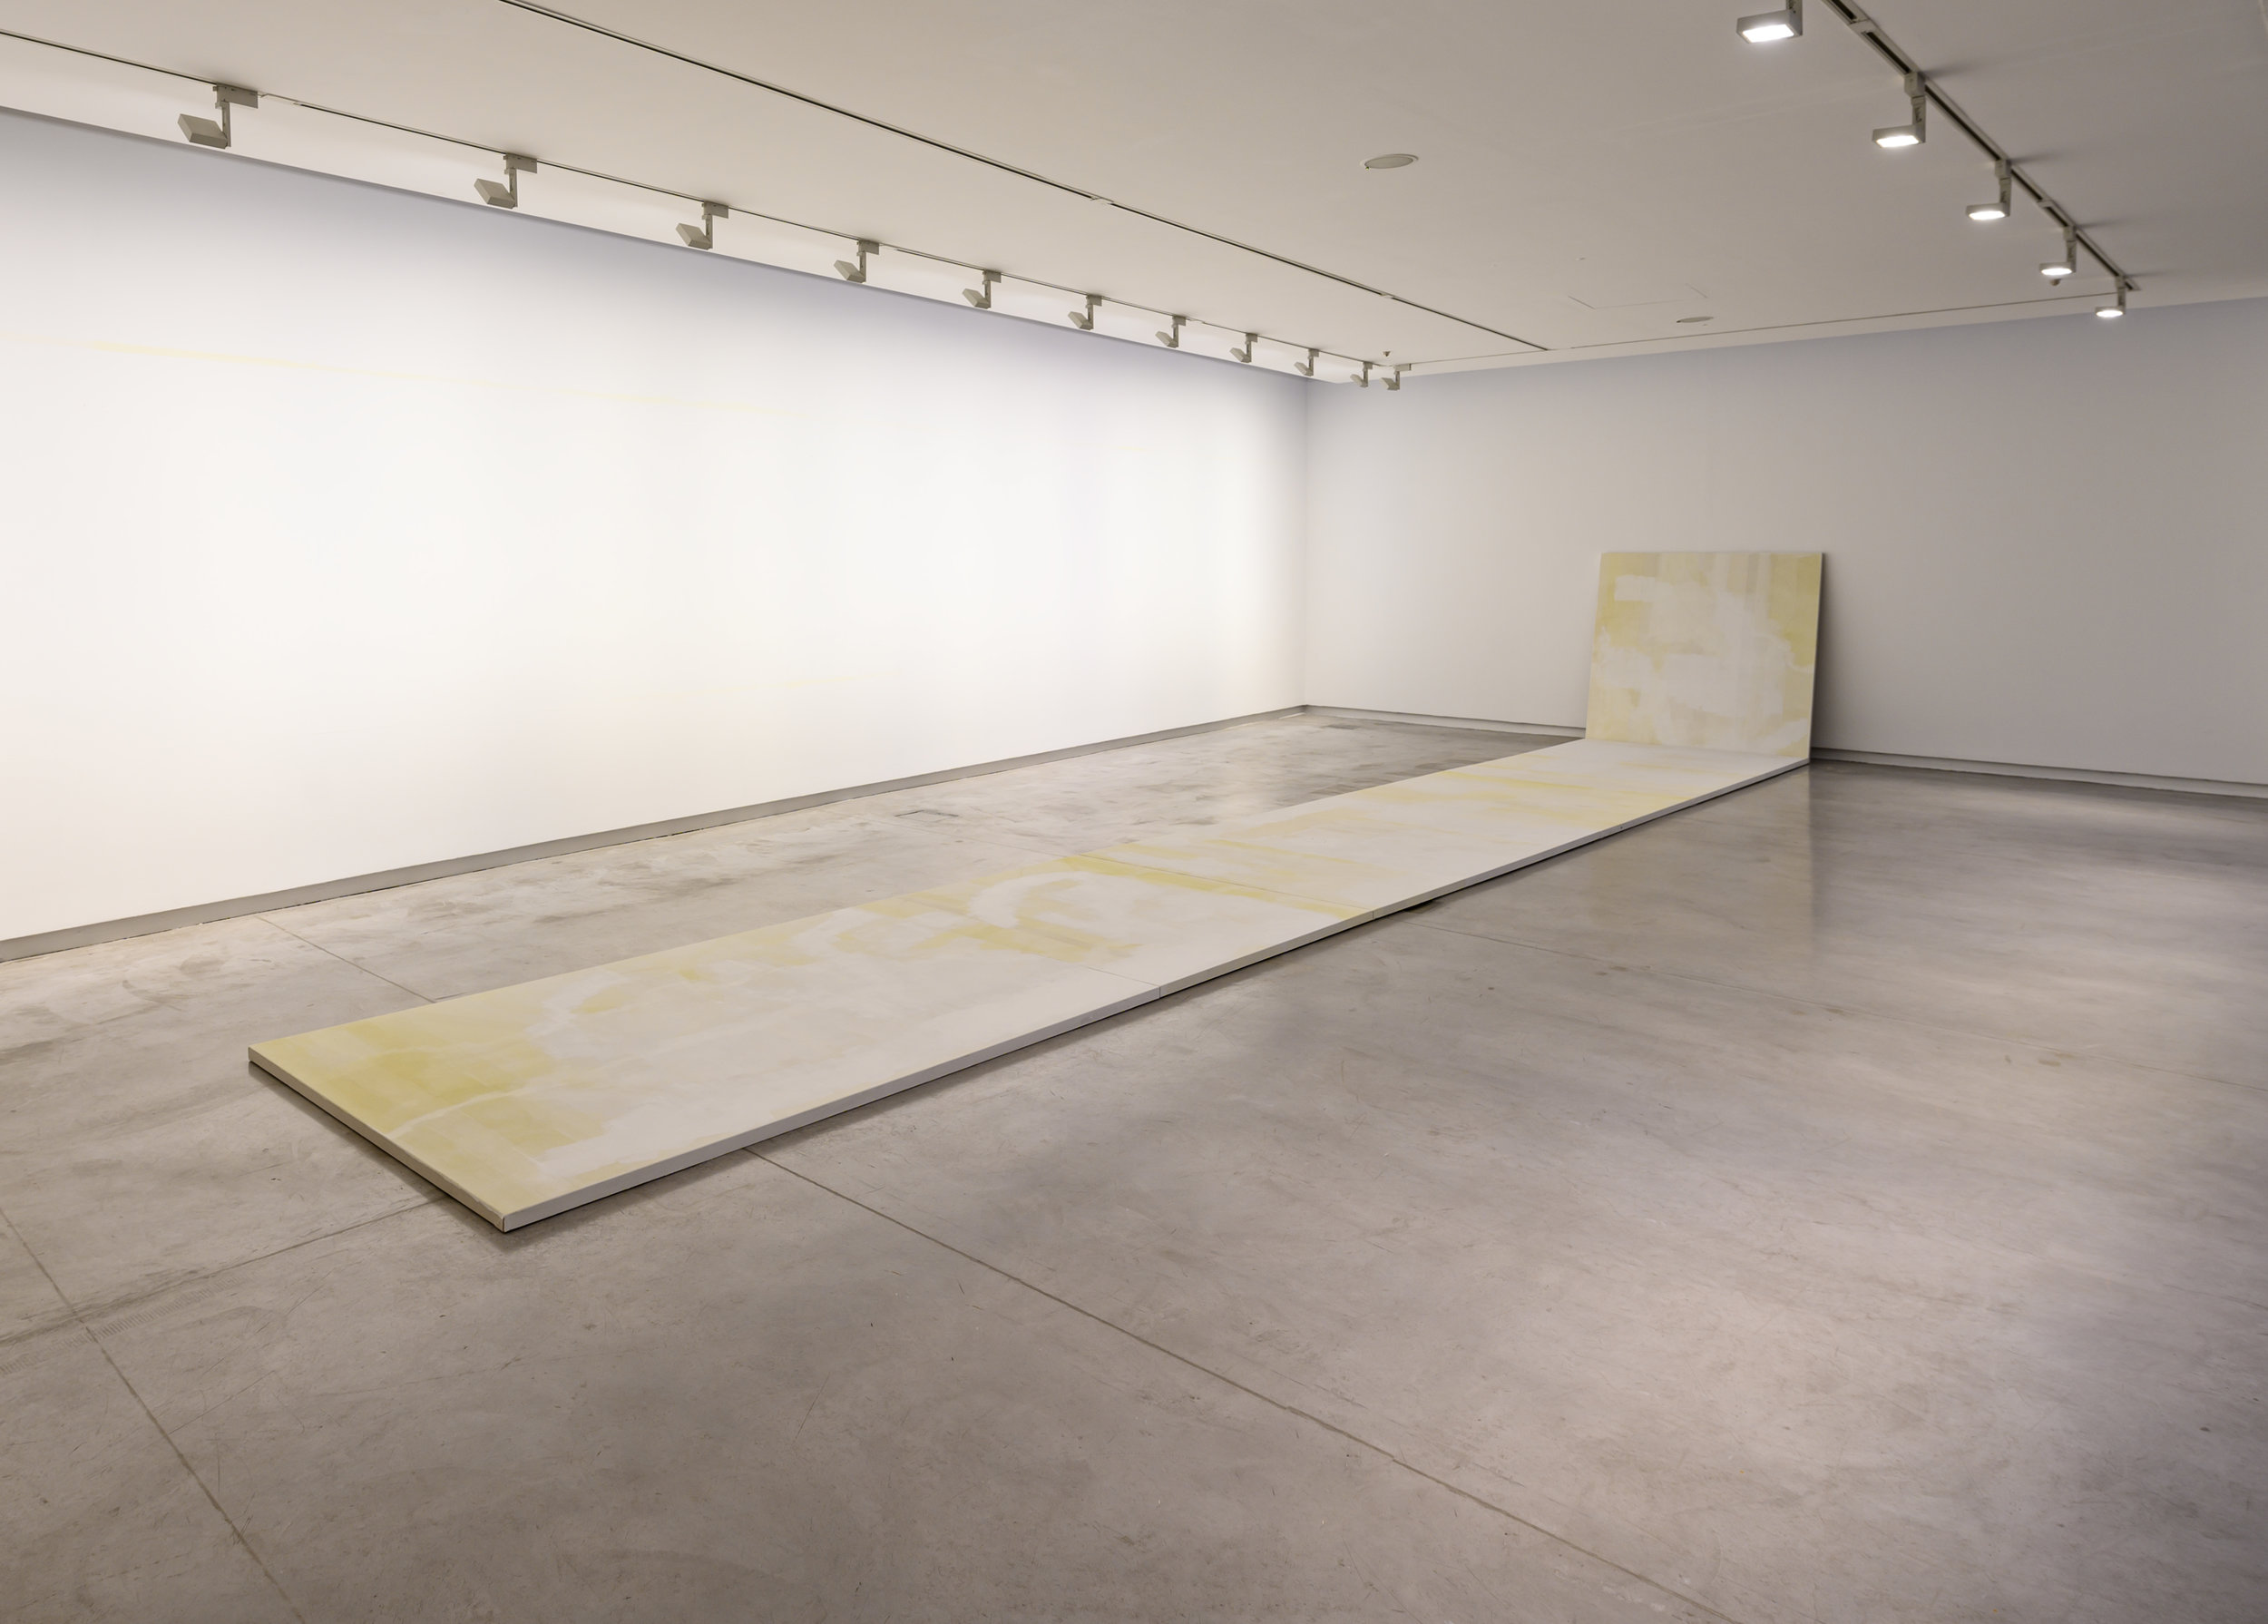 Dale Harding,  Untitled (Private painting H1),  2019. Dry pigment, gum arabic and acrylic on linen and walls; 3 x (250 x 150 cm), 3 x (150 x 150 cm); overall dimensions variable. Installation view:  Surface Tension,  Sharjah Art Foundation, Sharjah, 2019. Commissioned by Sharjah Art Foundation. Courtesy of the artist and Milani Gallery, Brisbane. Photo: Sharjah Art Foundation